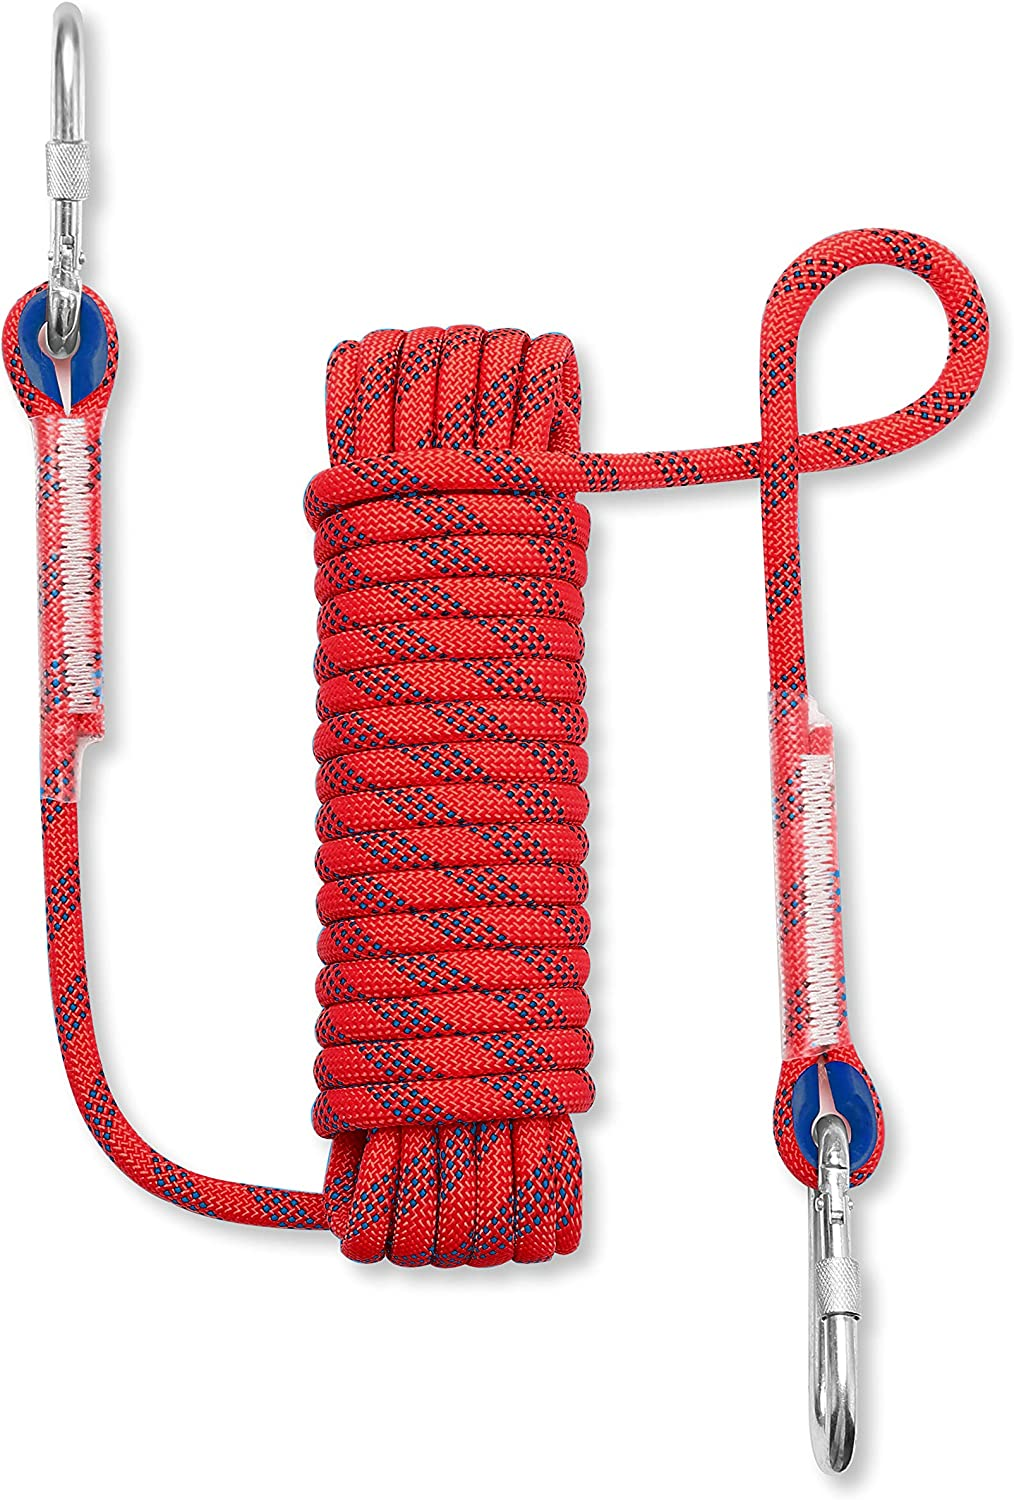 10m,32ft 30m,98ft 20m,65ft Static Outdoor Climbing Rock Climbing Rope 12MM,